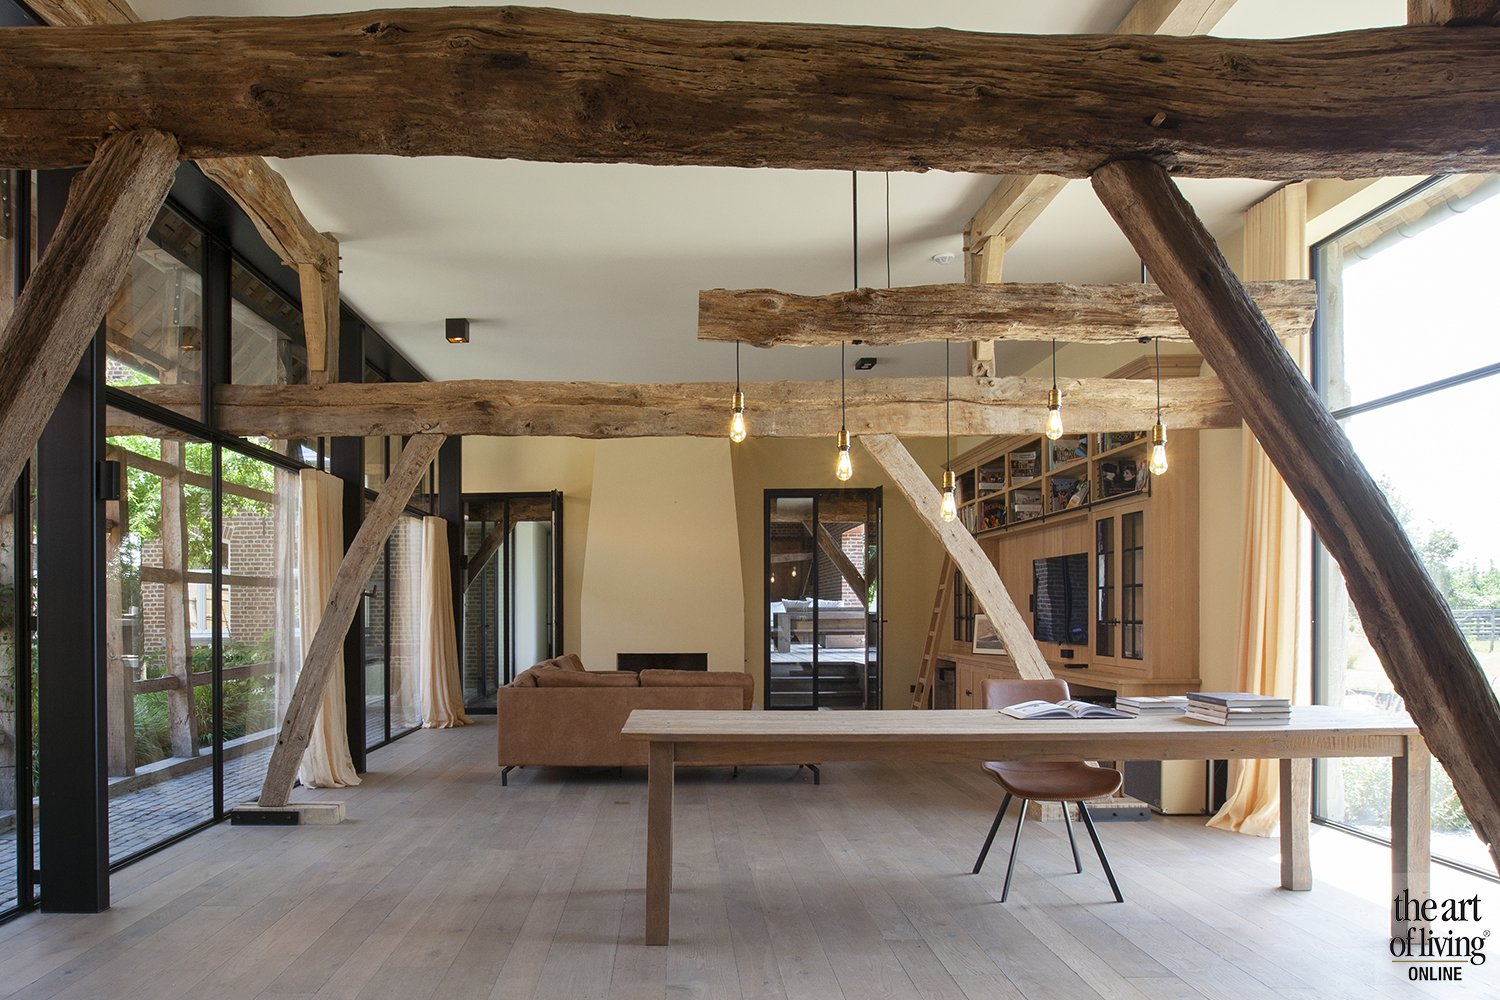 Architectslab, verbouwing, the art of living